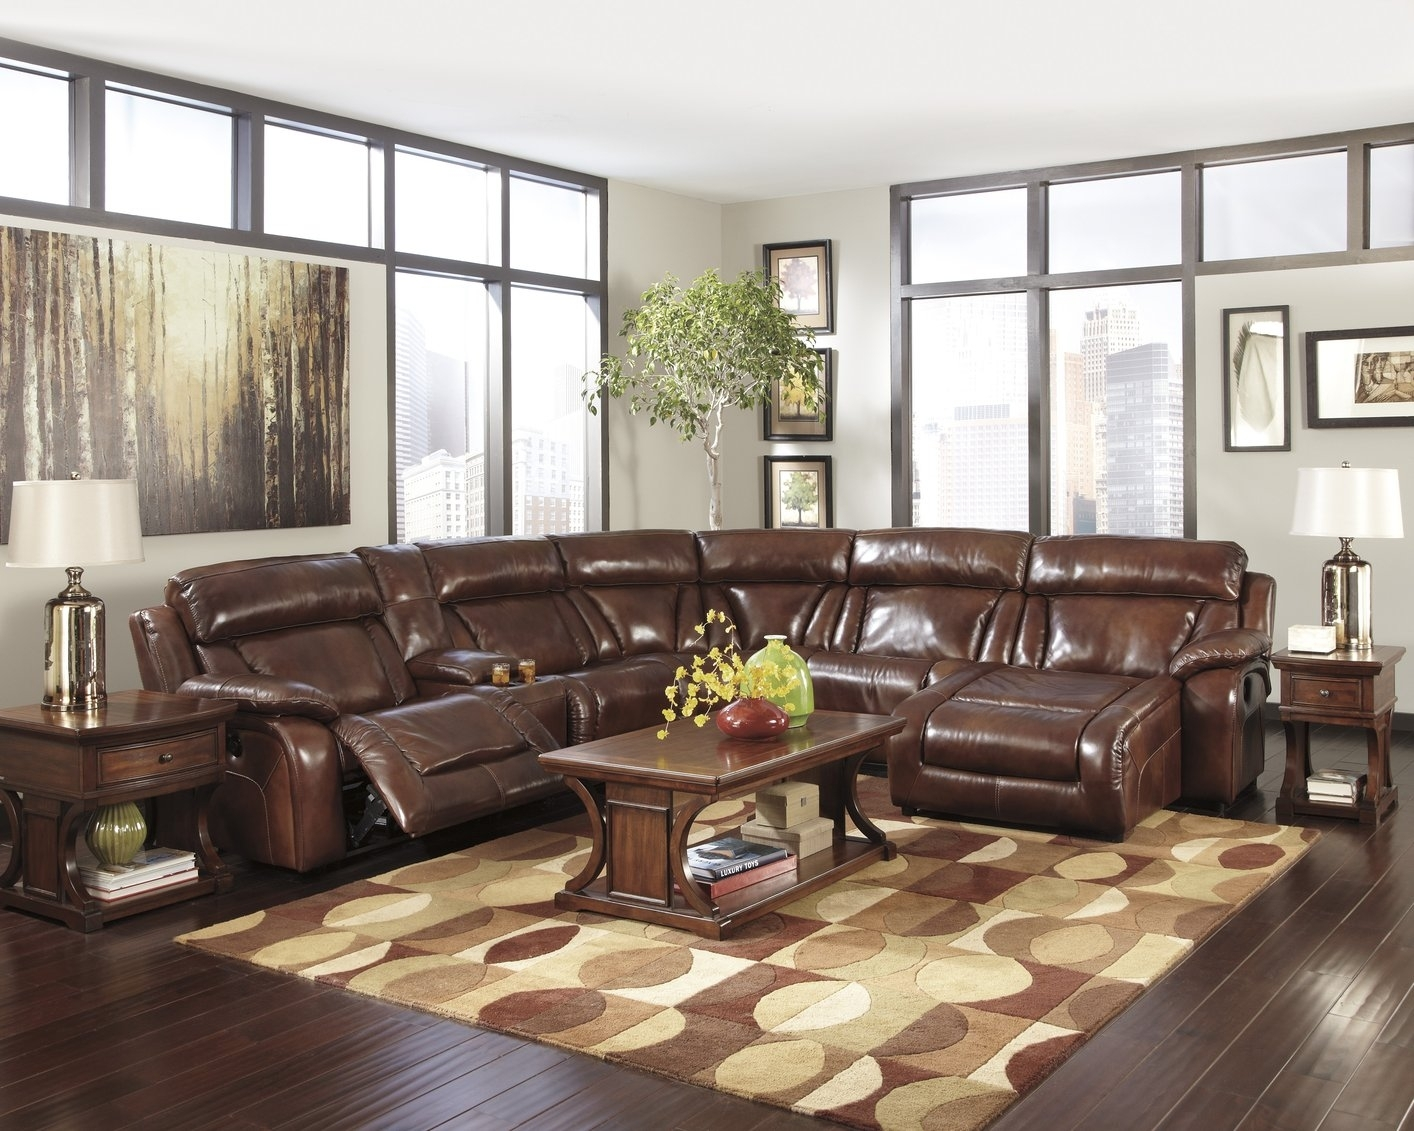 sofa covers london ontario wall beds uk 10 ideas of high quality sectional sofas